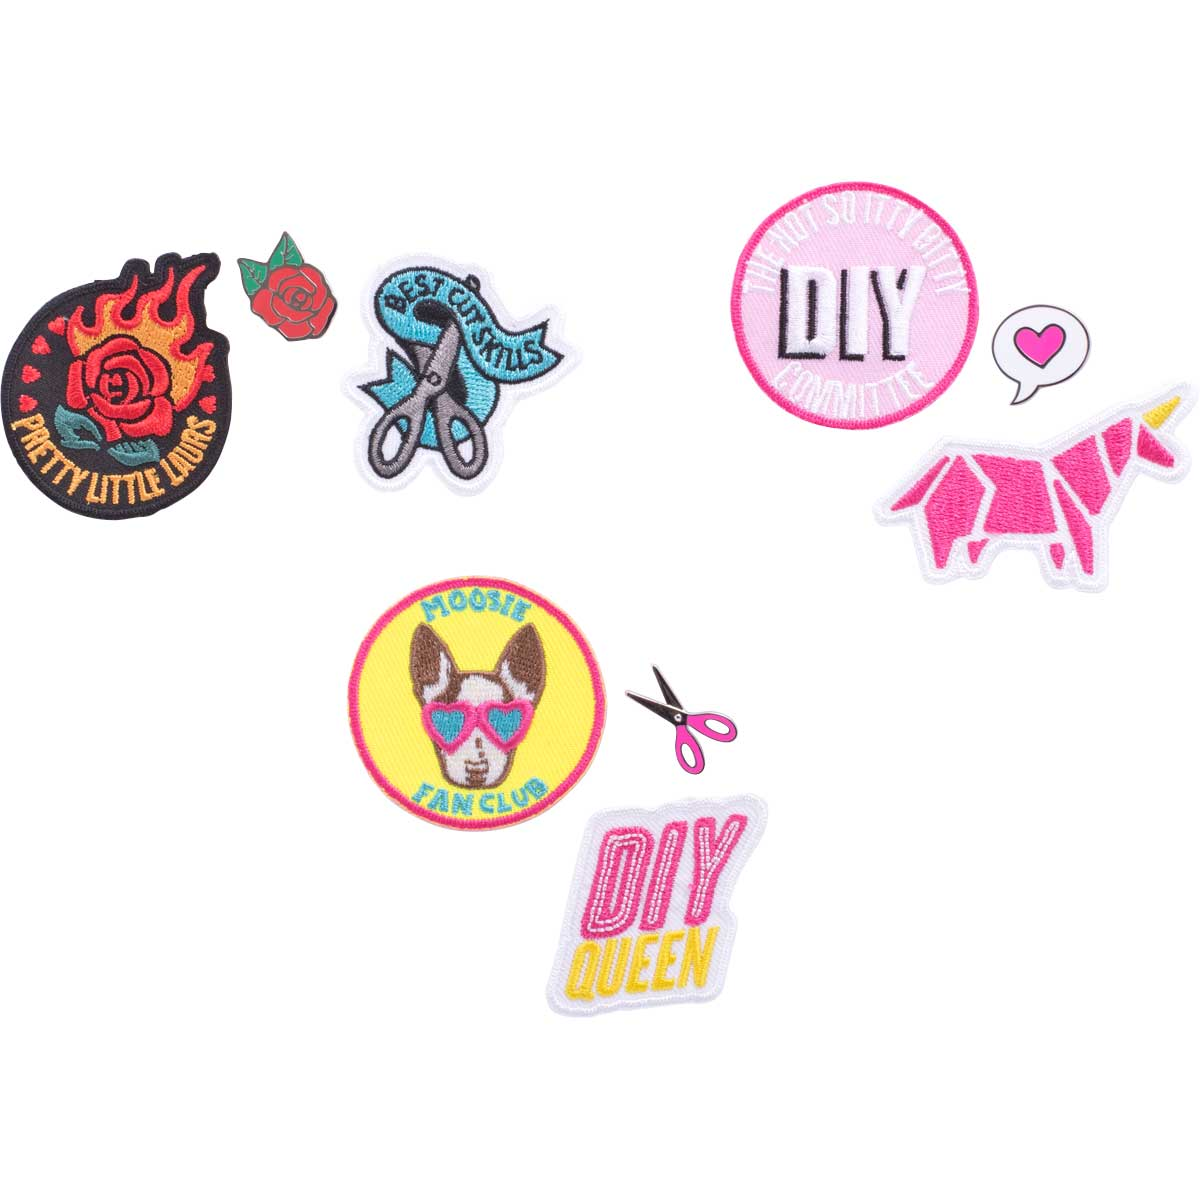 LaurDIY ® Pins & Patches Set